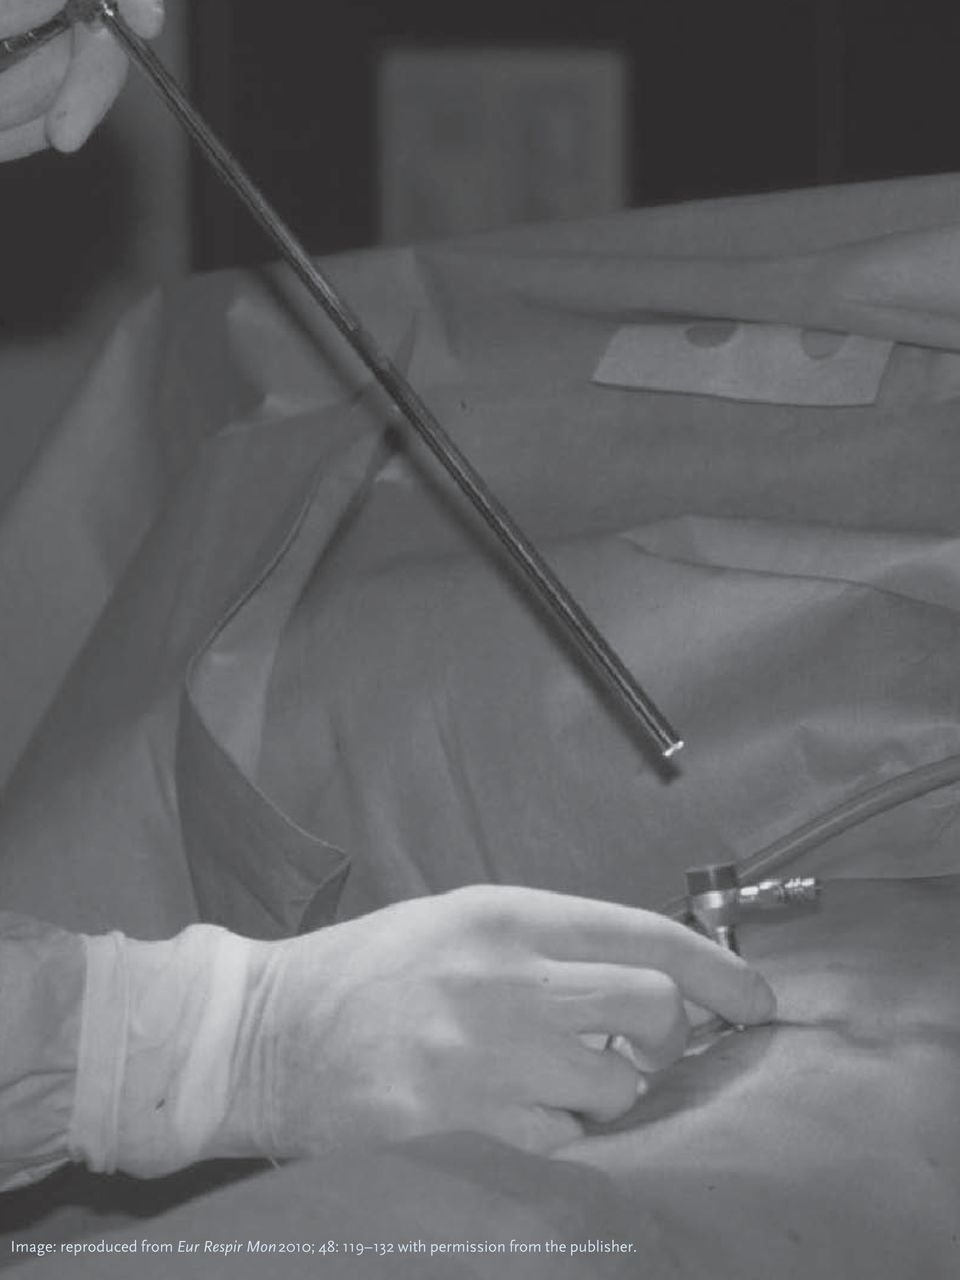 Endoscopy Suite: History And Clinical Use Of Thoracoscopy/pleuroscopy In